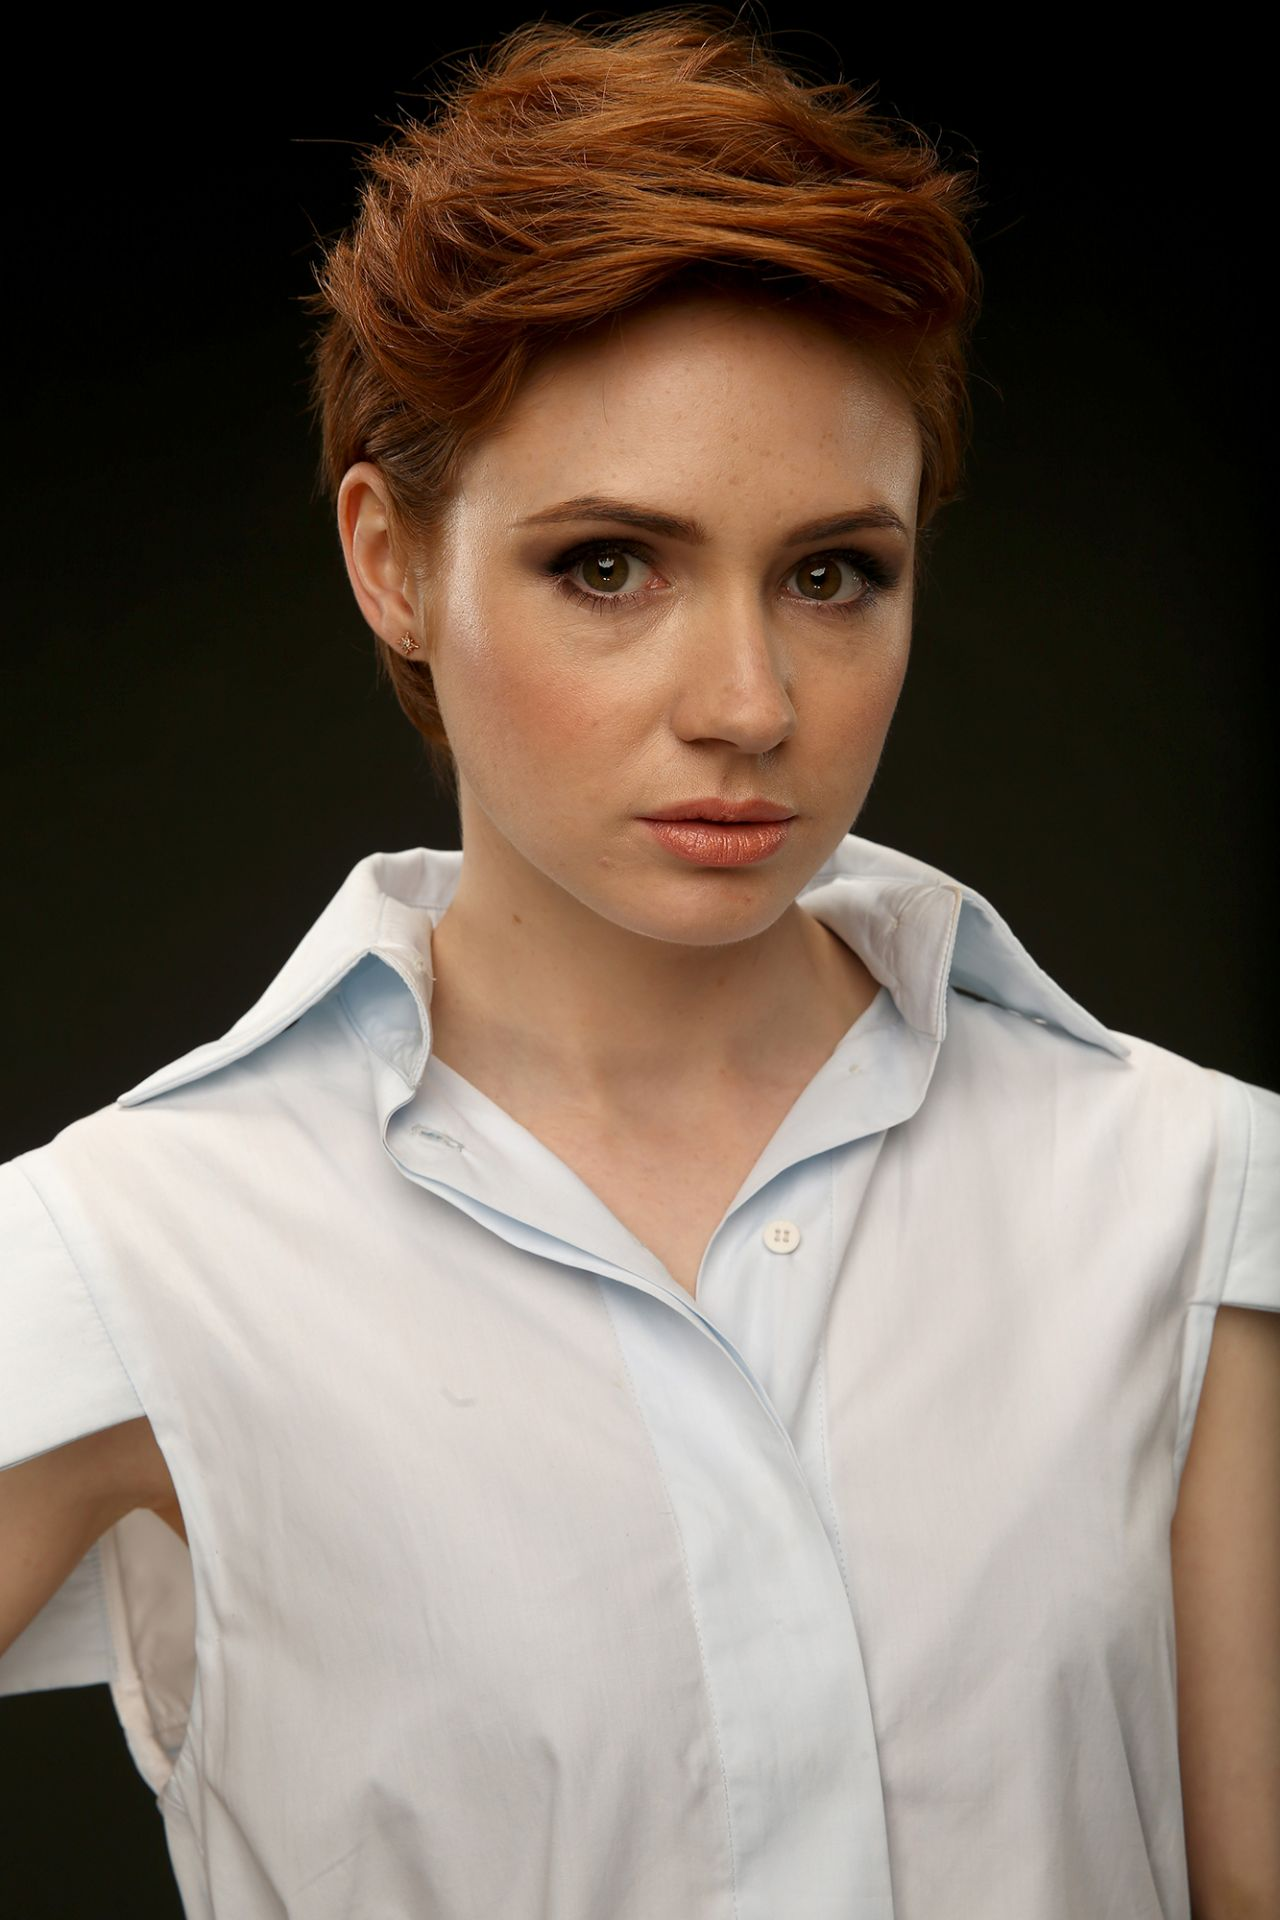 Karen gillan as an air hostess